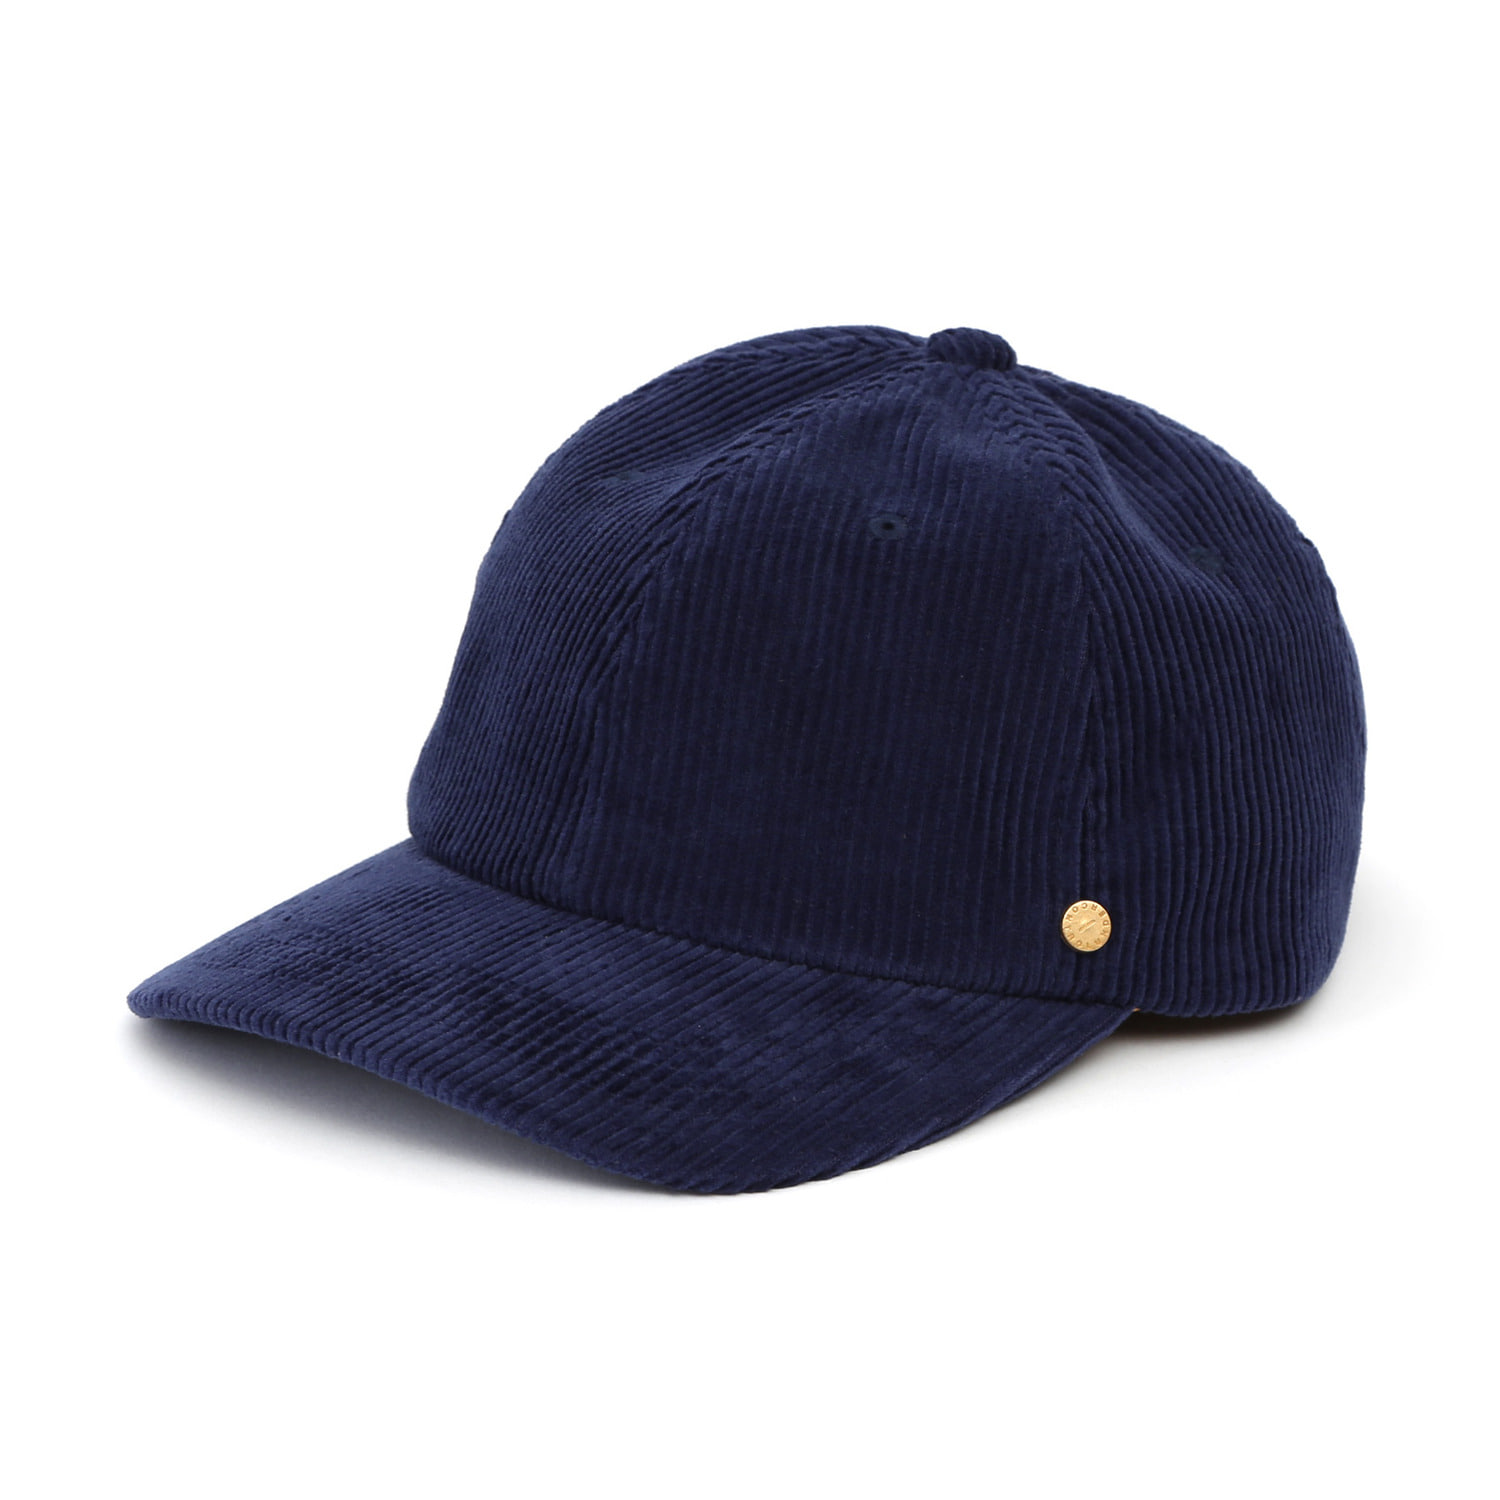 [2차 재입고] 6PANNEL BALL CAP / CORDUROY / DEEP SEA